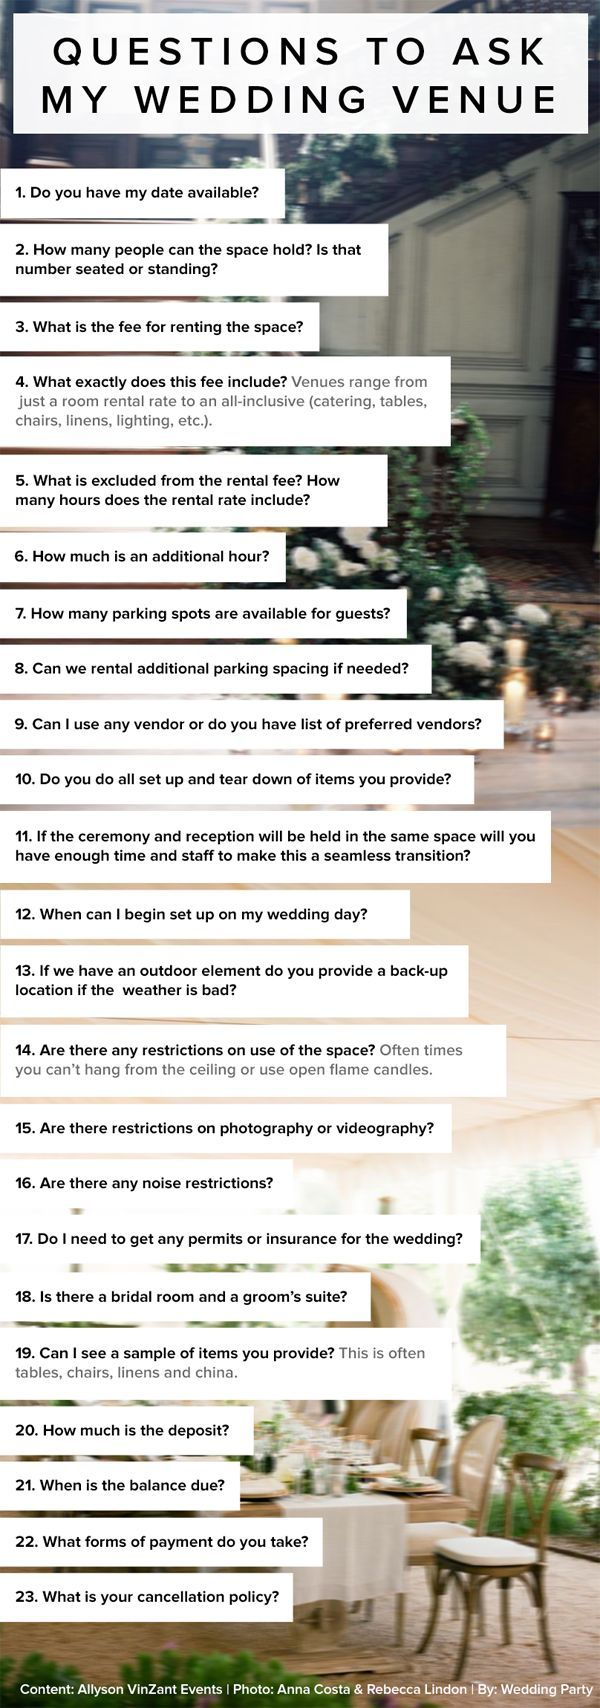 wedding planning checklist spreadsheet free%0A    questions to ask my wedding venue by Allyson VinZant Events